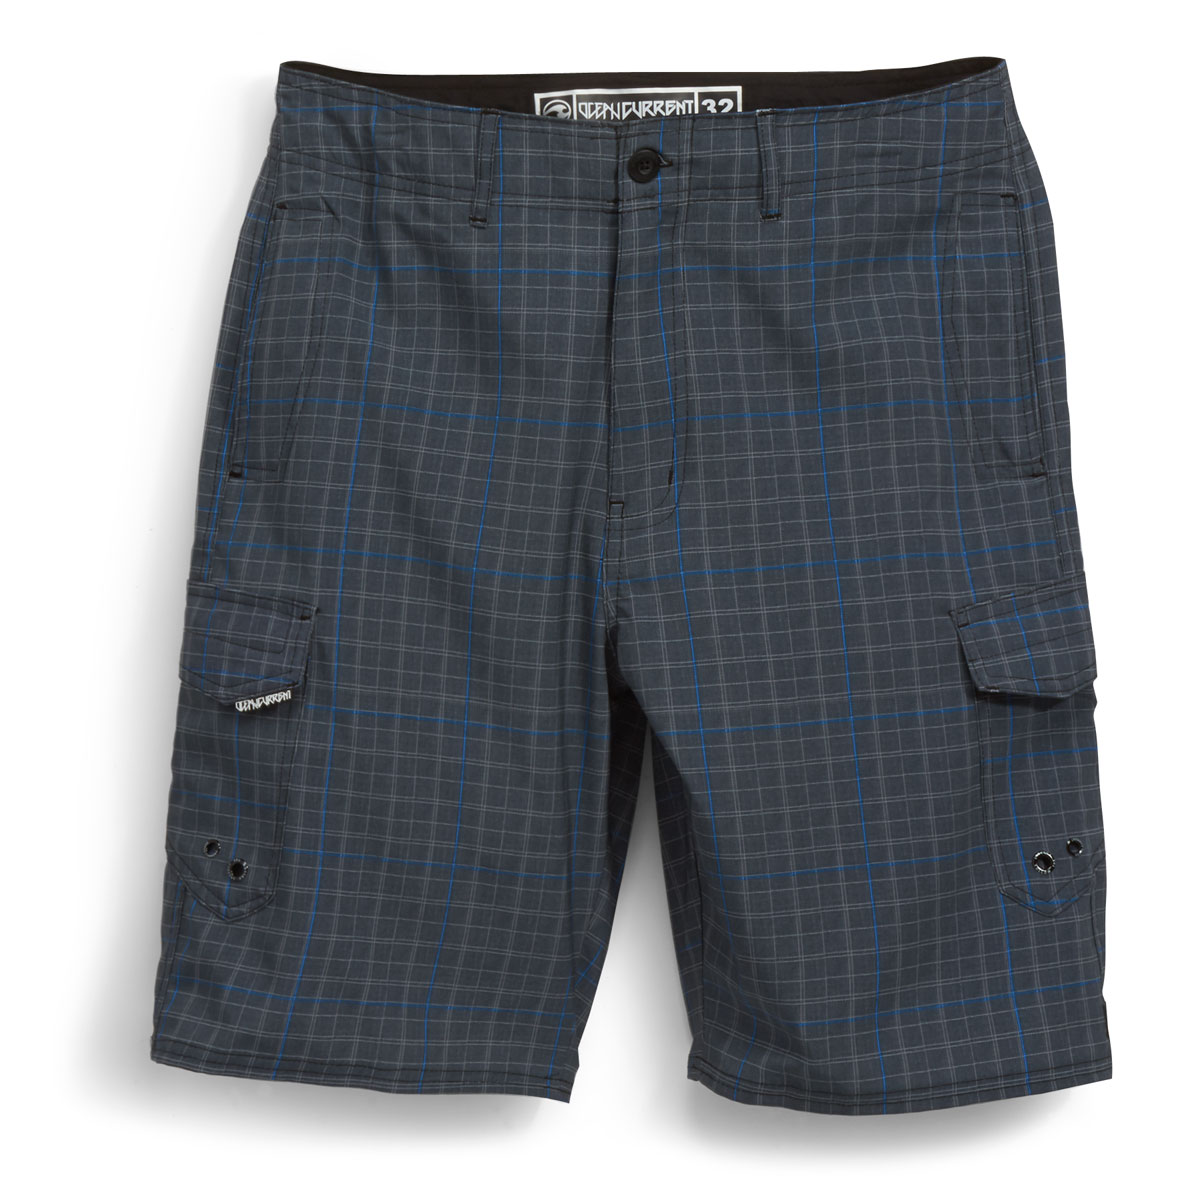 Ocean Current Men's Plaid Check Cargo Boardshorts - Blue, 32